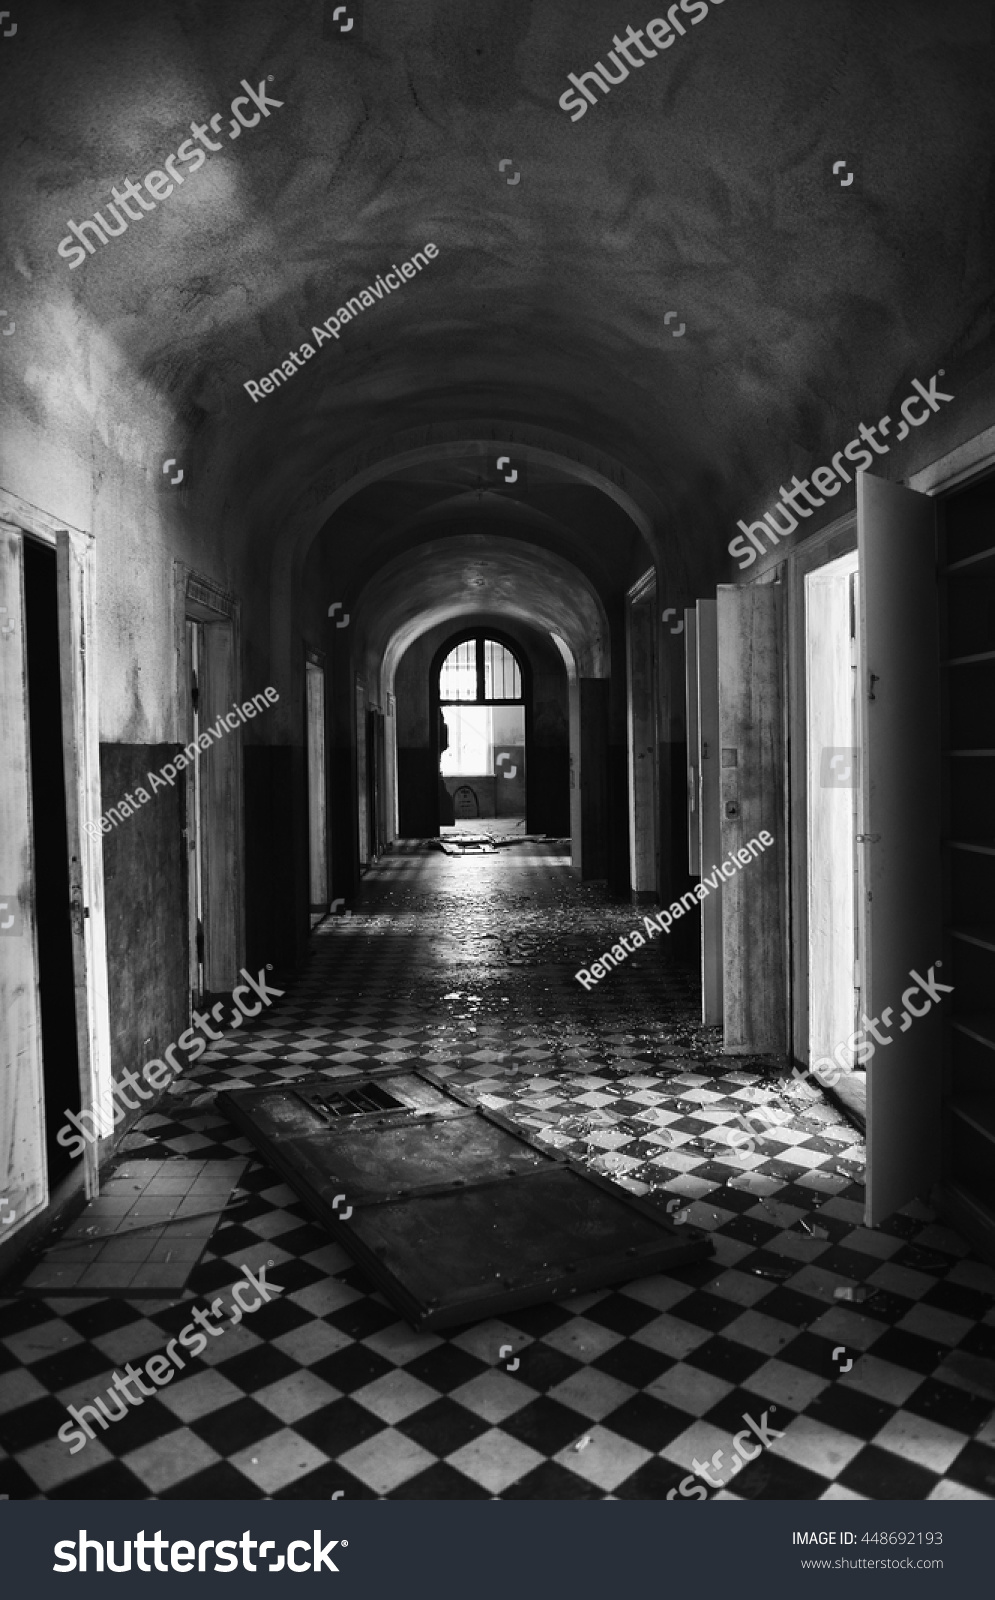 old architectural photography. Wonderful Architectural Old Abandoned Corridor With Columns In Black And White Selenium Photo  Abstract Architectural Inside Architectural Photography